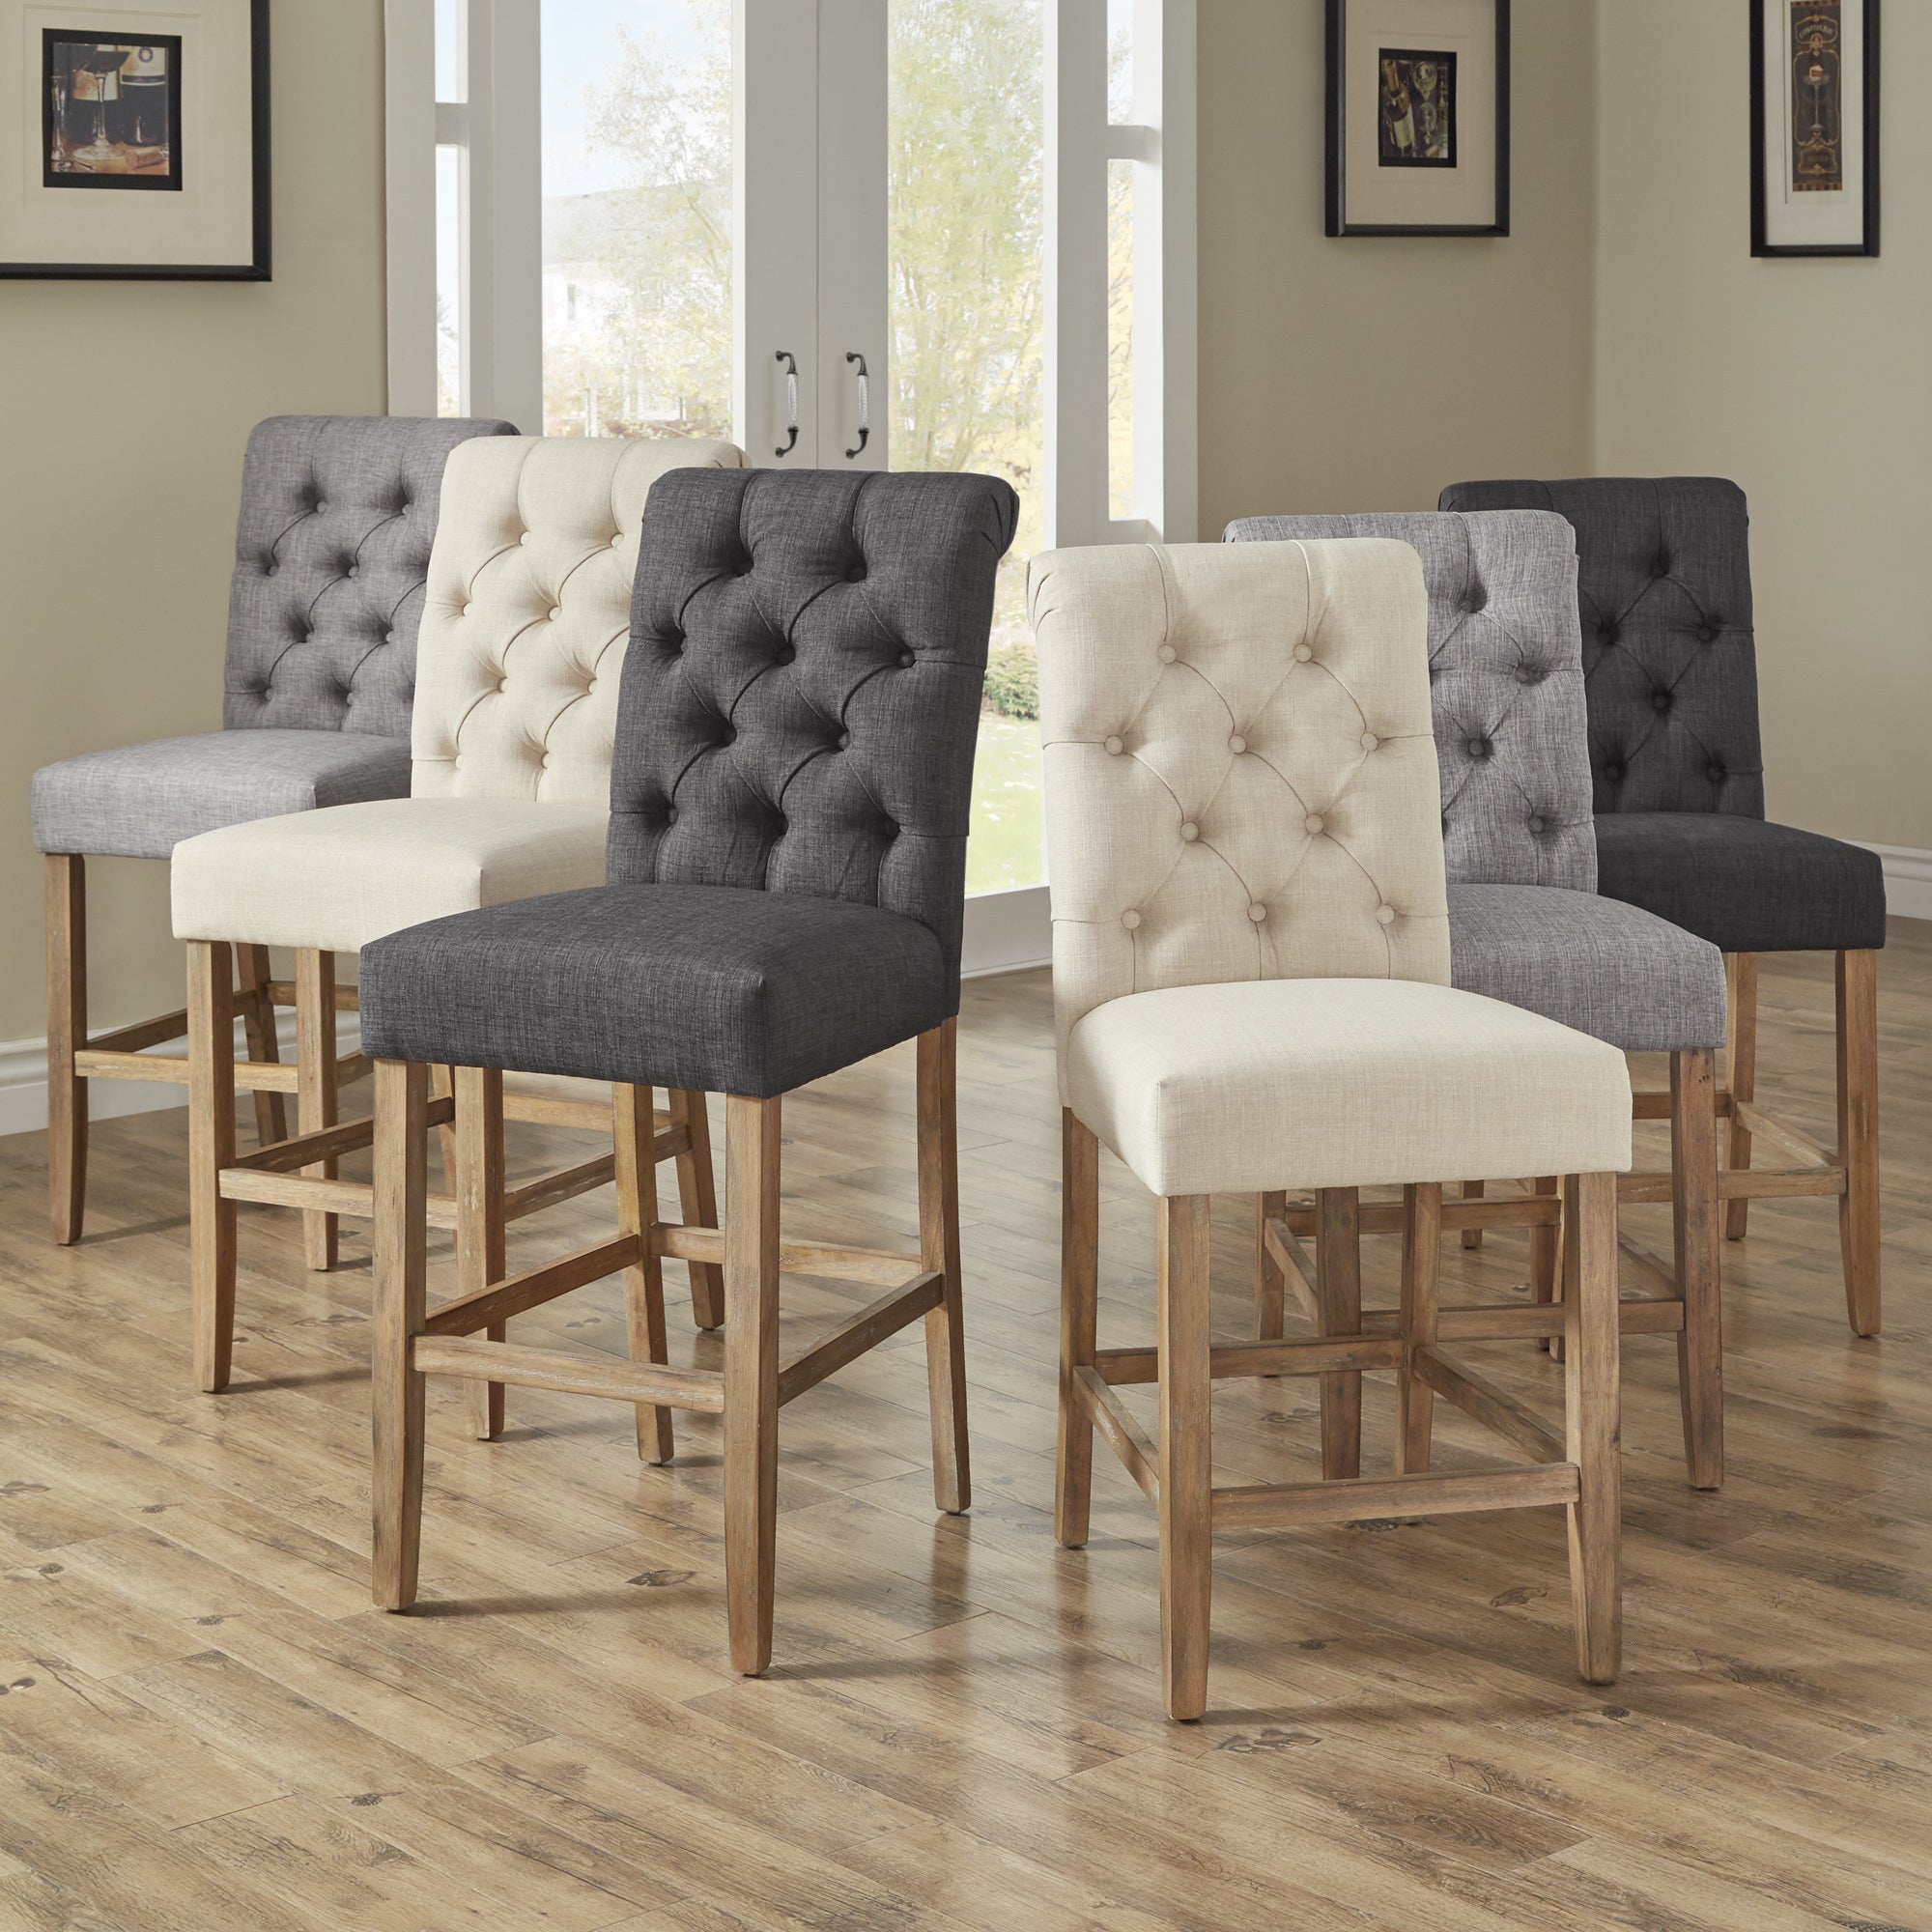 Benchwright Premium Tufted Rolled Back Counter/ Bar Height Stools (Set Of 2)Inspire Q Artisan For Recent Benchwright Bar Height Dining Tables (View 8 of 25)